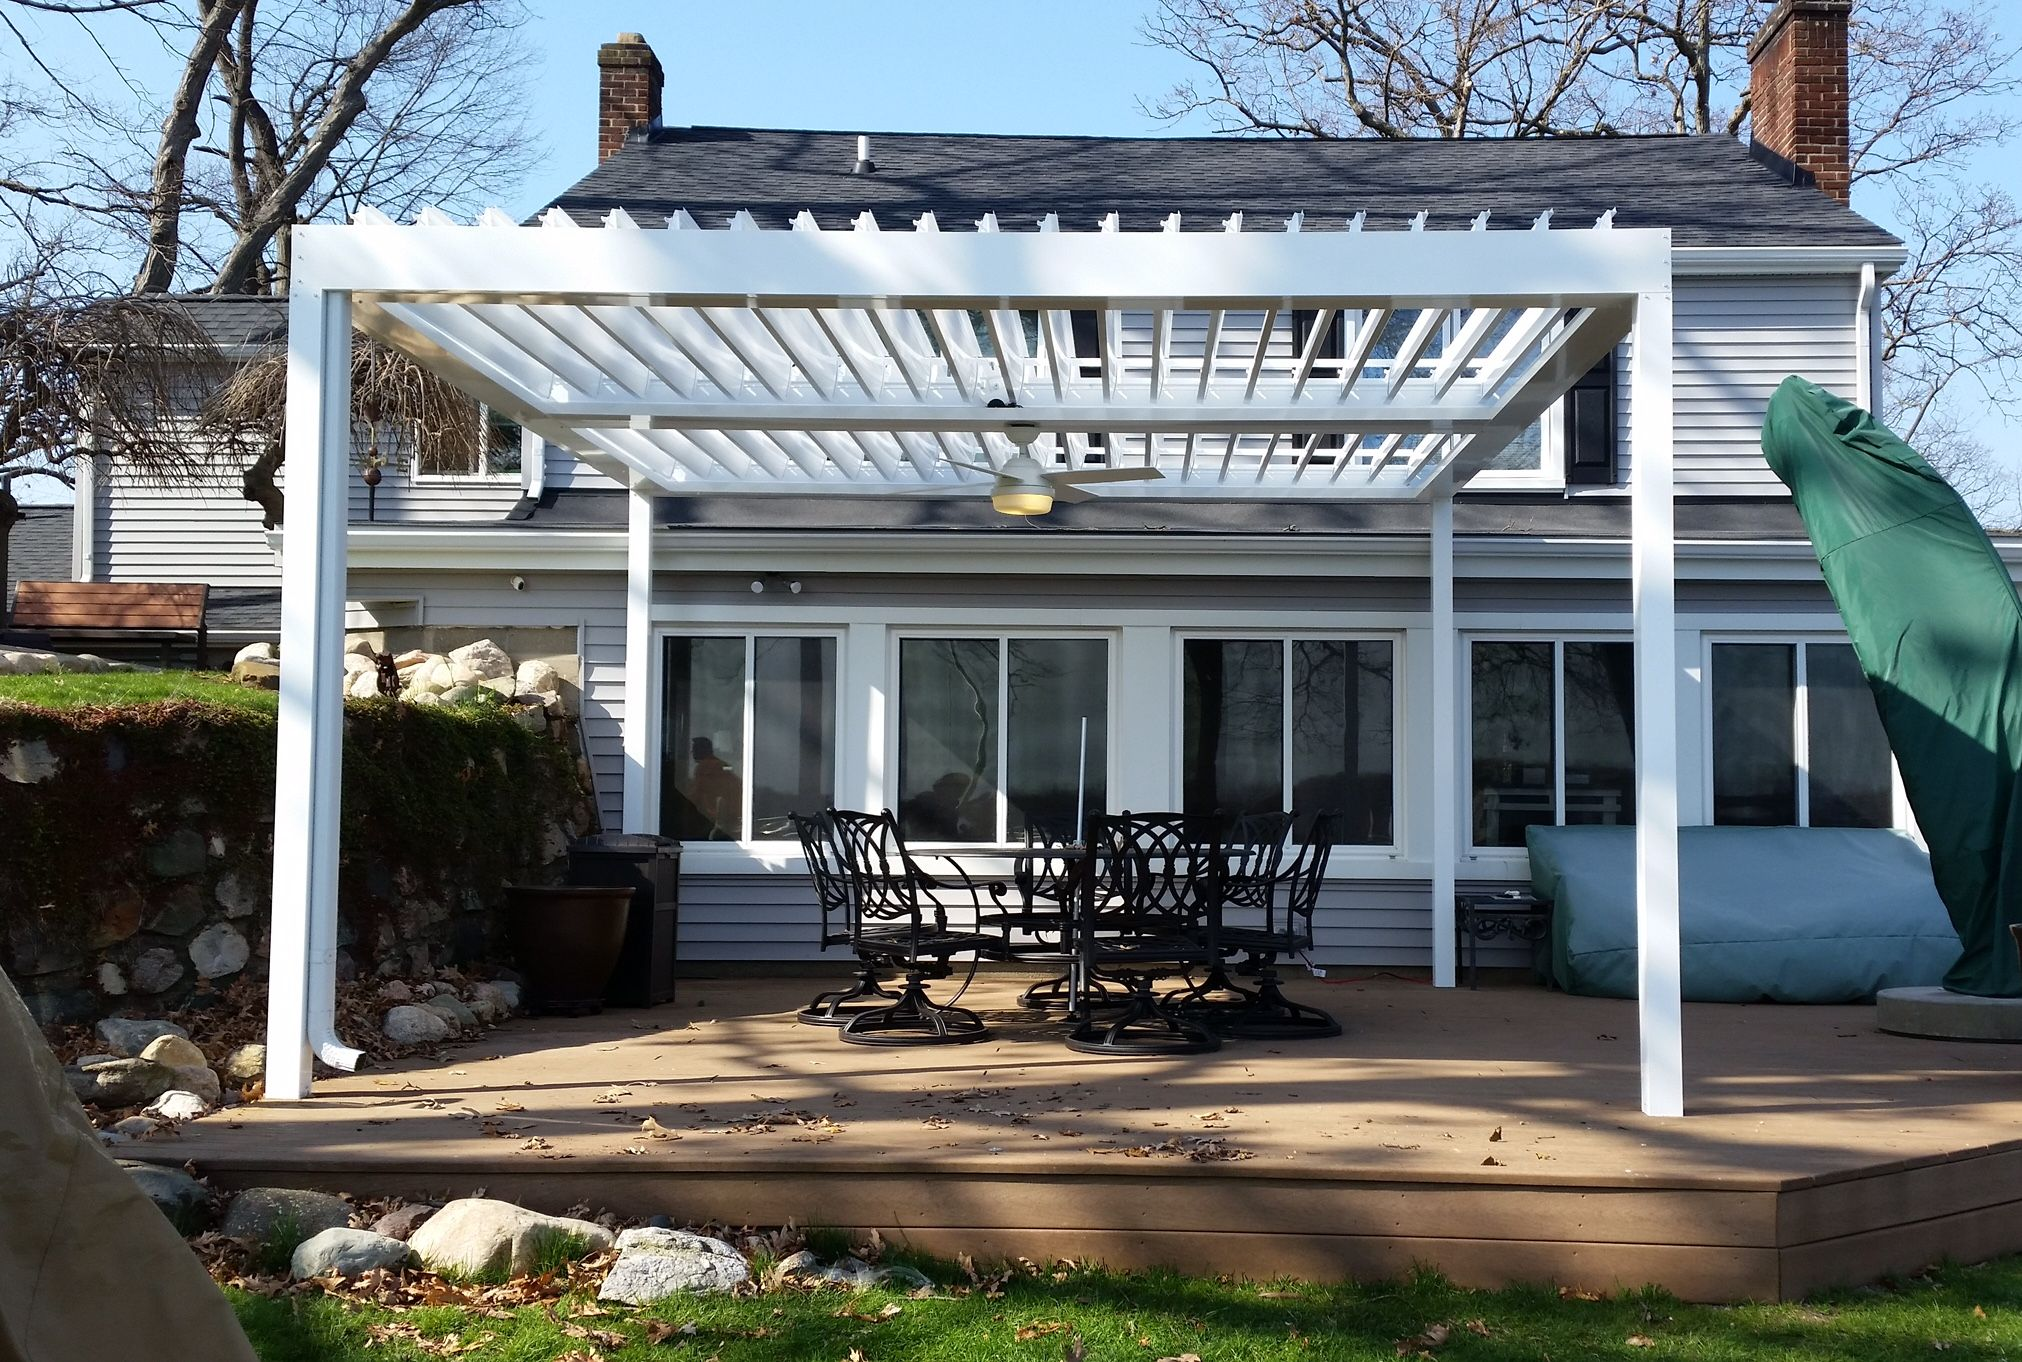 Roofing Companies In Nashville Tn In 2020 Shade Structure Roofing Image House